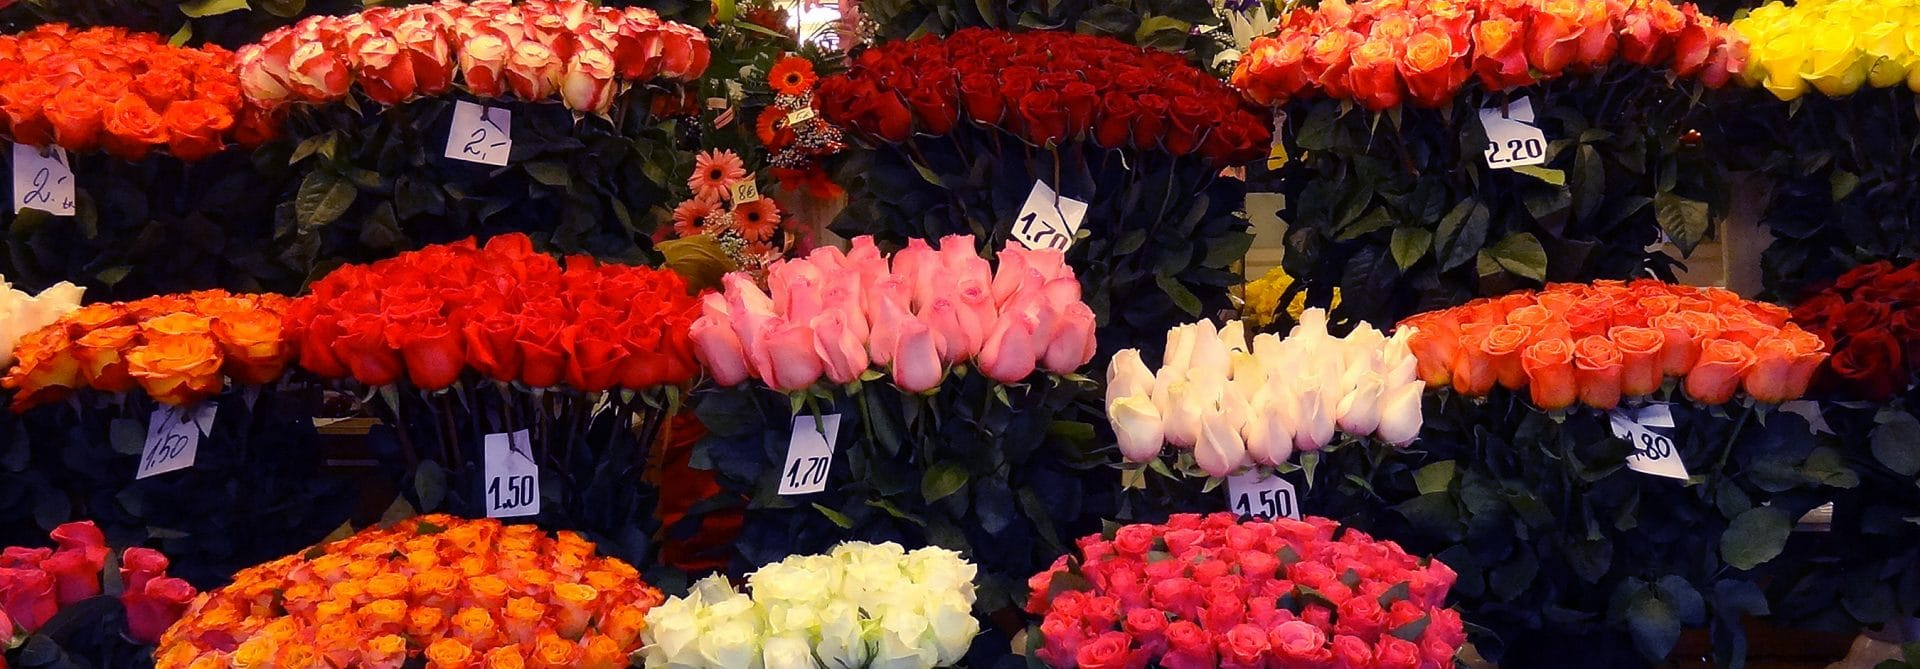 Flower Market - Tallinn, Estonia